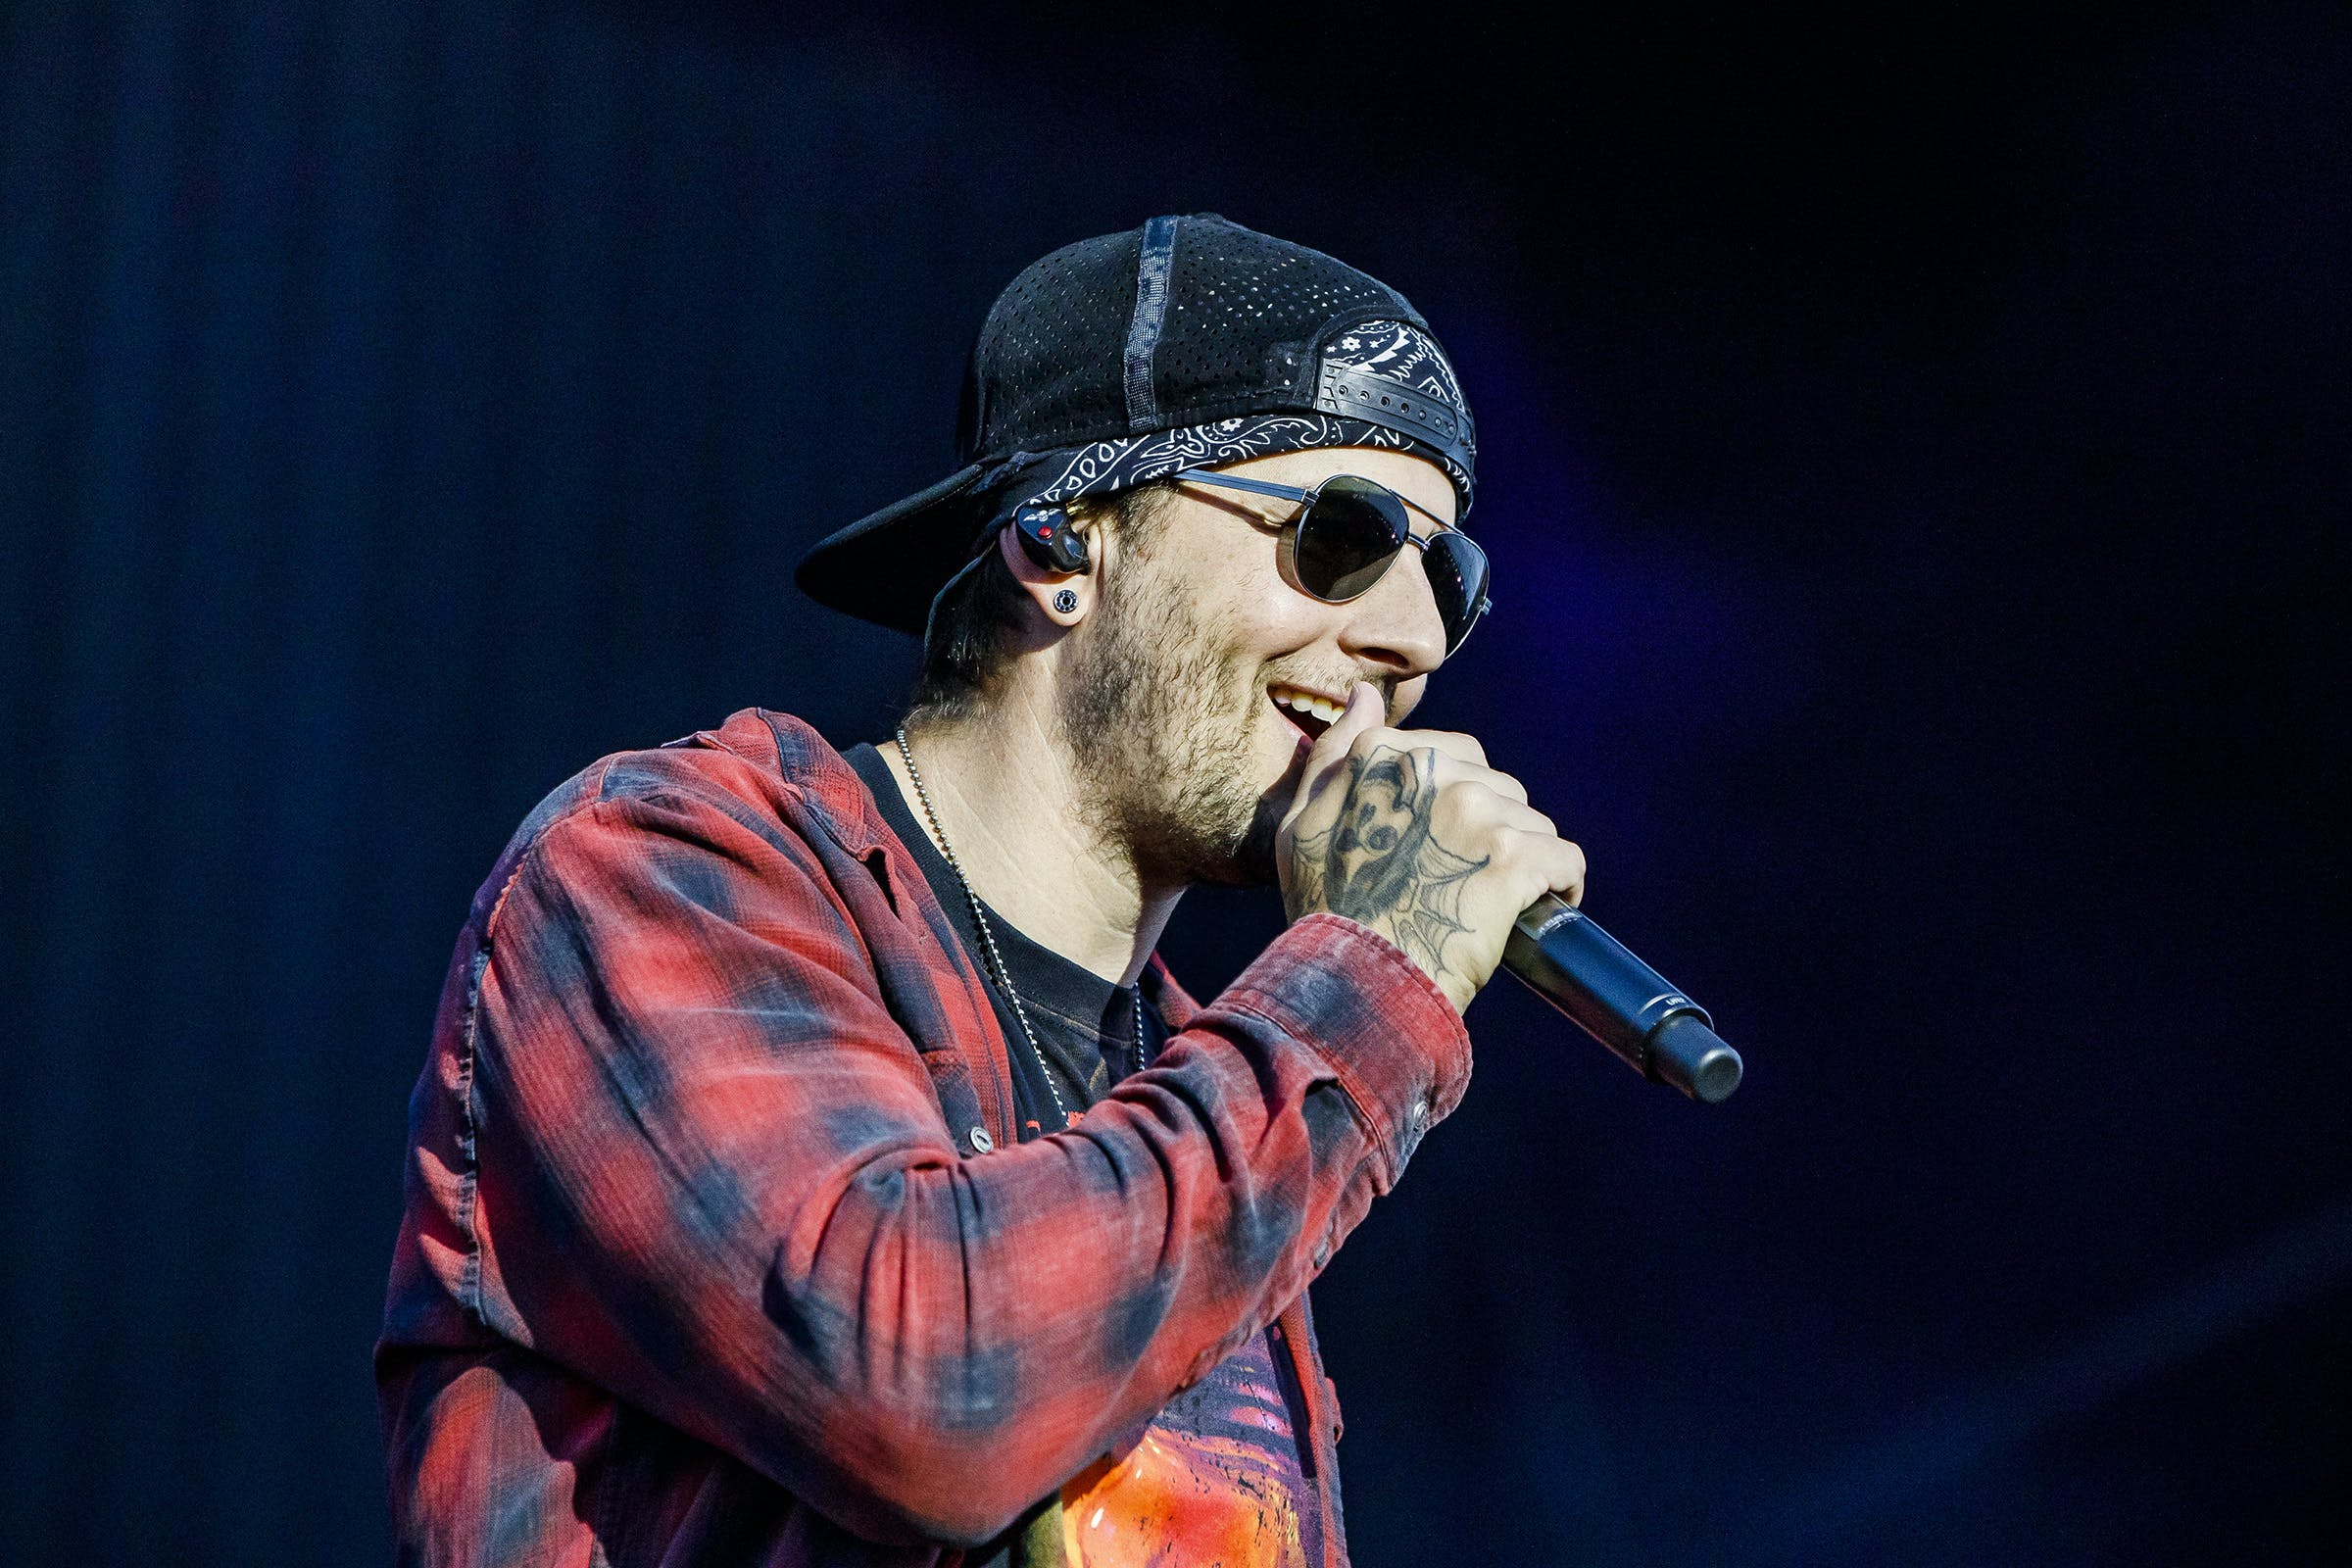 Avenged Sevenfold's M. Shadows To Guest On John Dolmayan's New Album